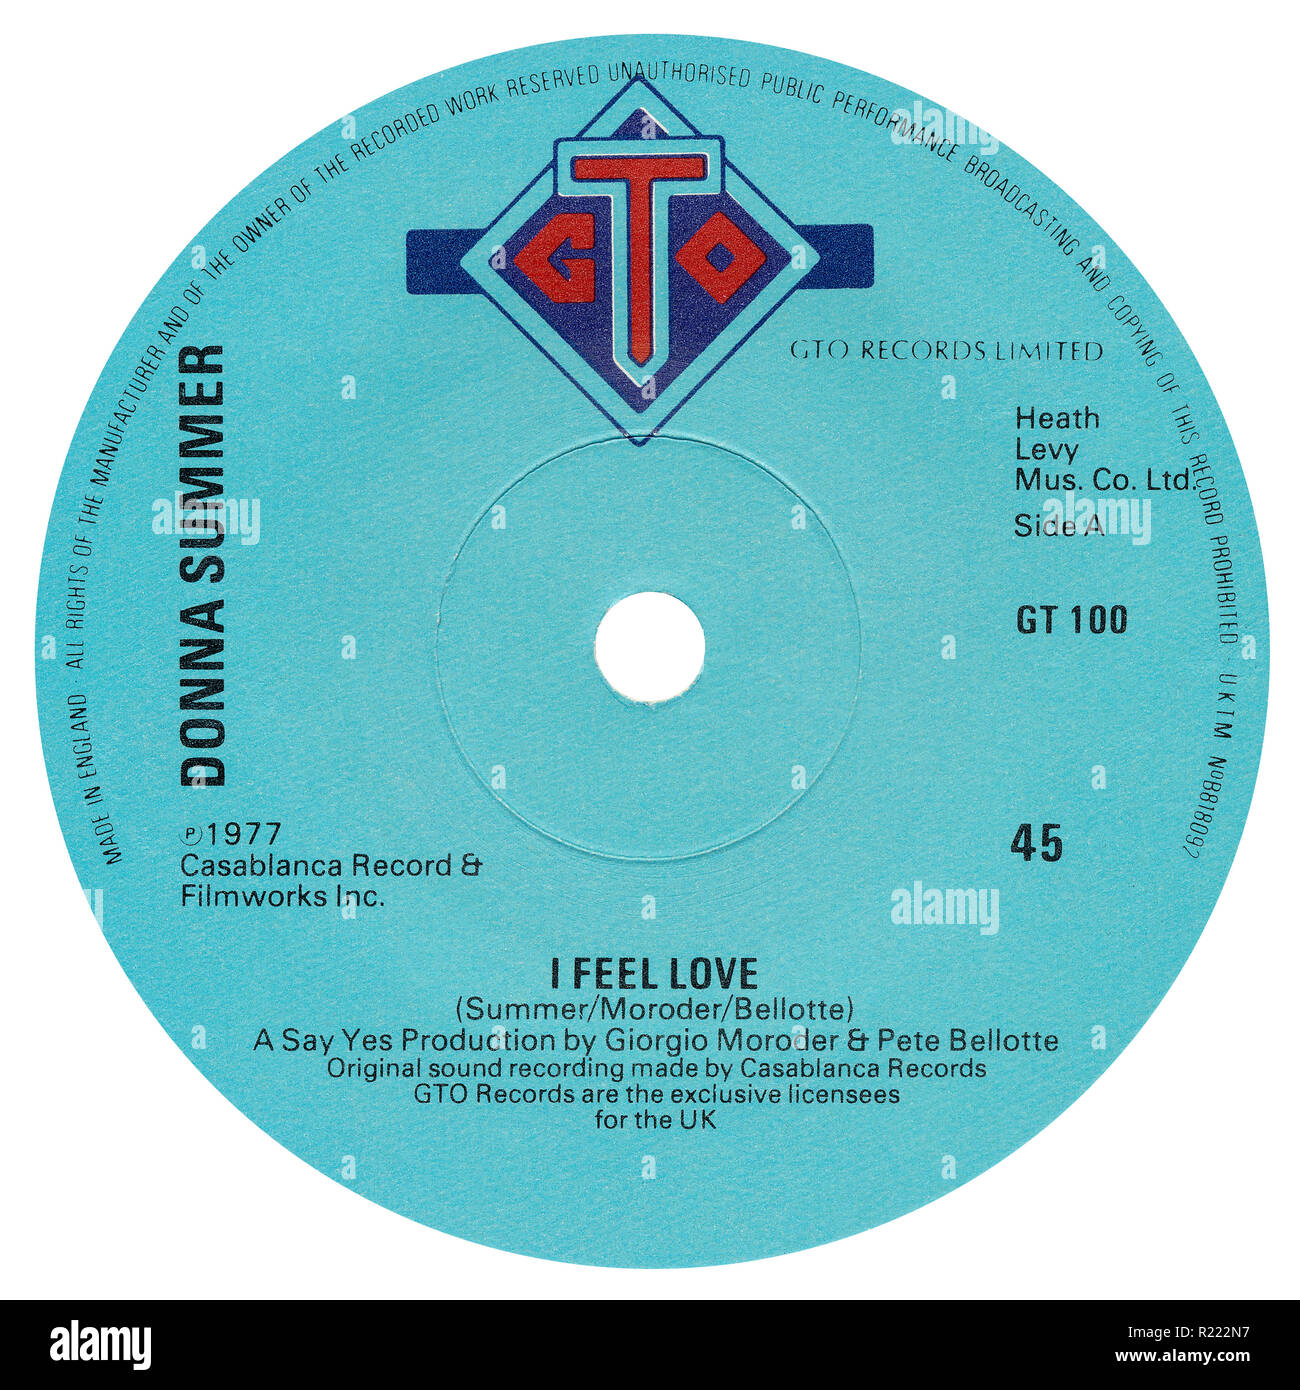 UK 45 rpm 7' single of I Feel Love by Donna Summer on the GTO label from 1977. Written by Donna Summer, Giorgio Moroder and Pete Bellotte and produced by Giorgio Moroder and Pete Bellotte. - Stock Image